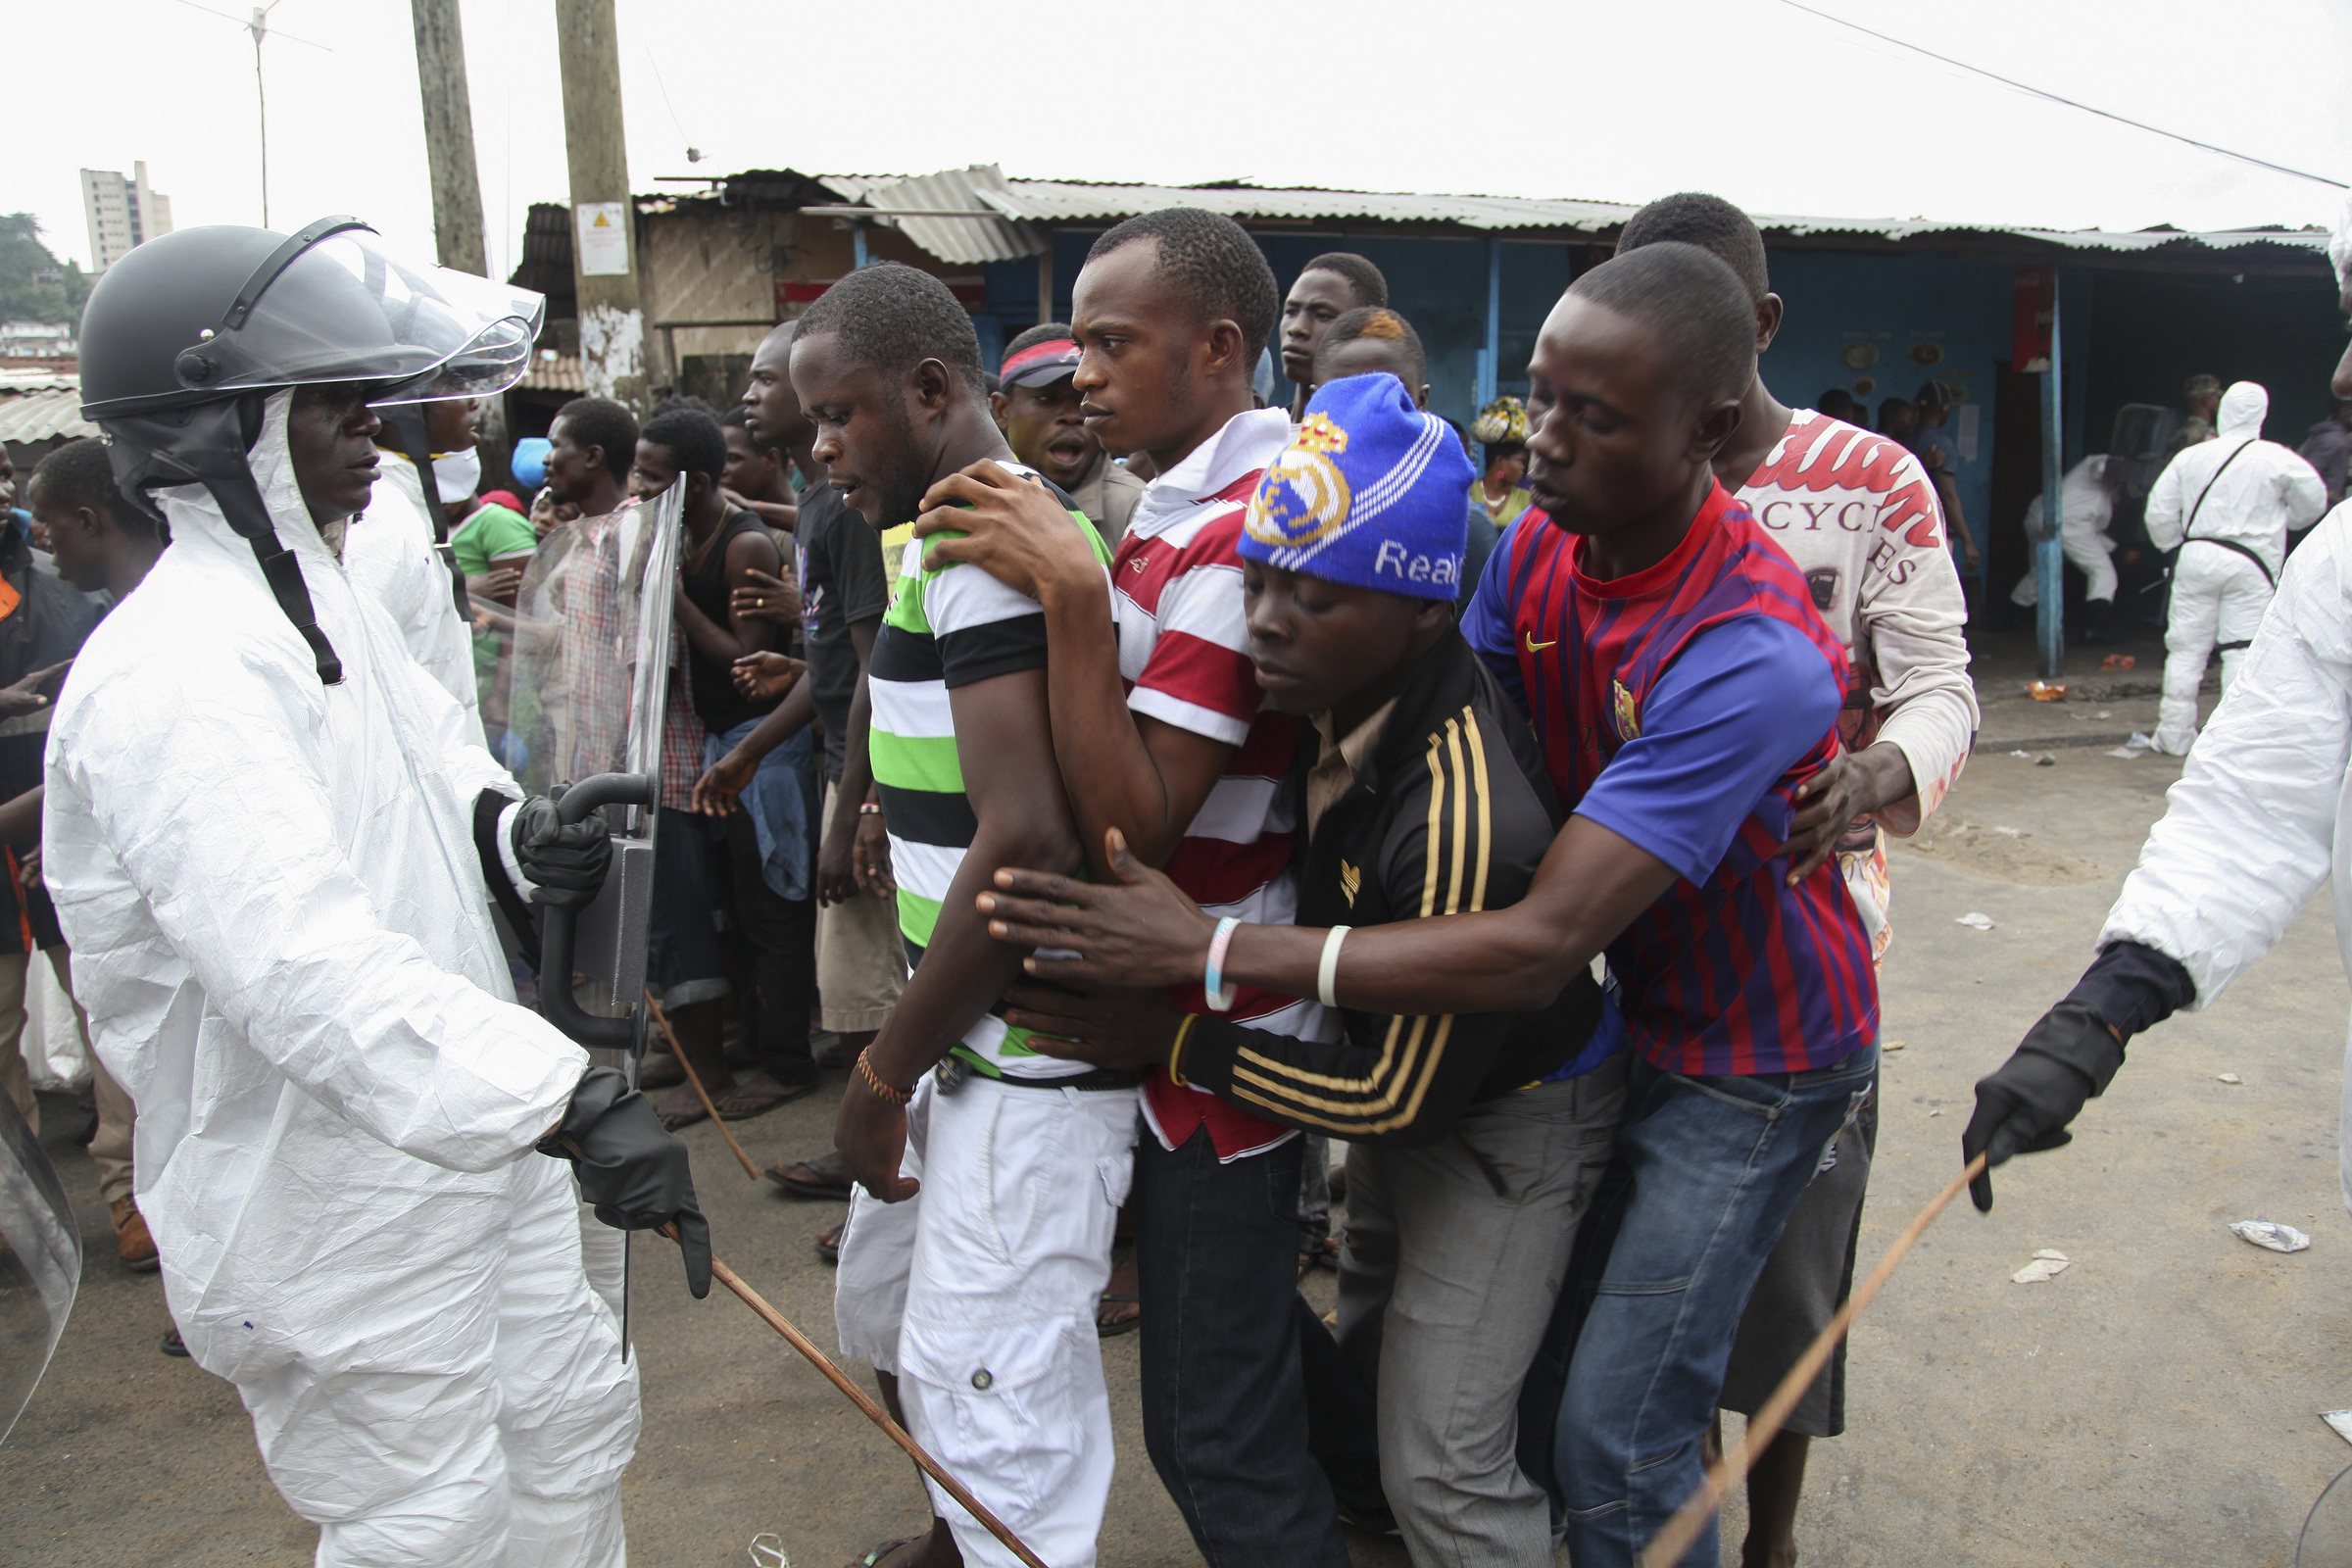 Liberian police control residents in Ebola quarantined area as they wait for food rations